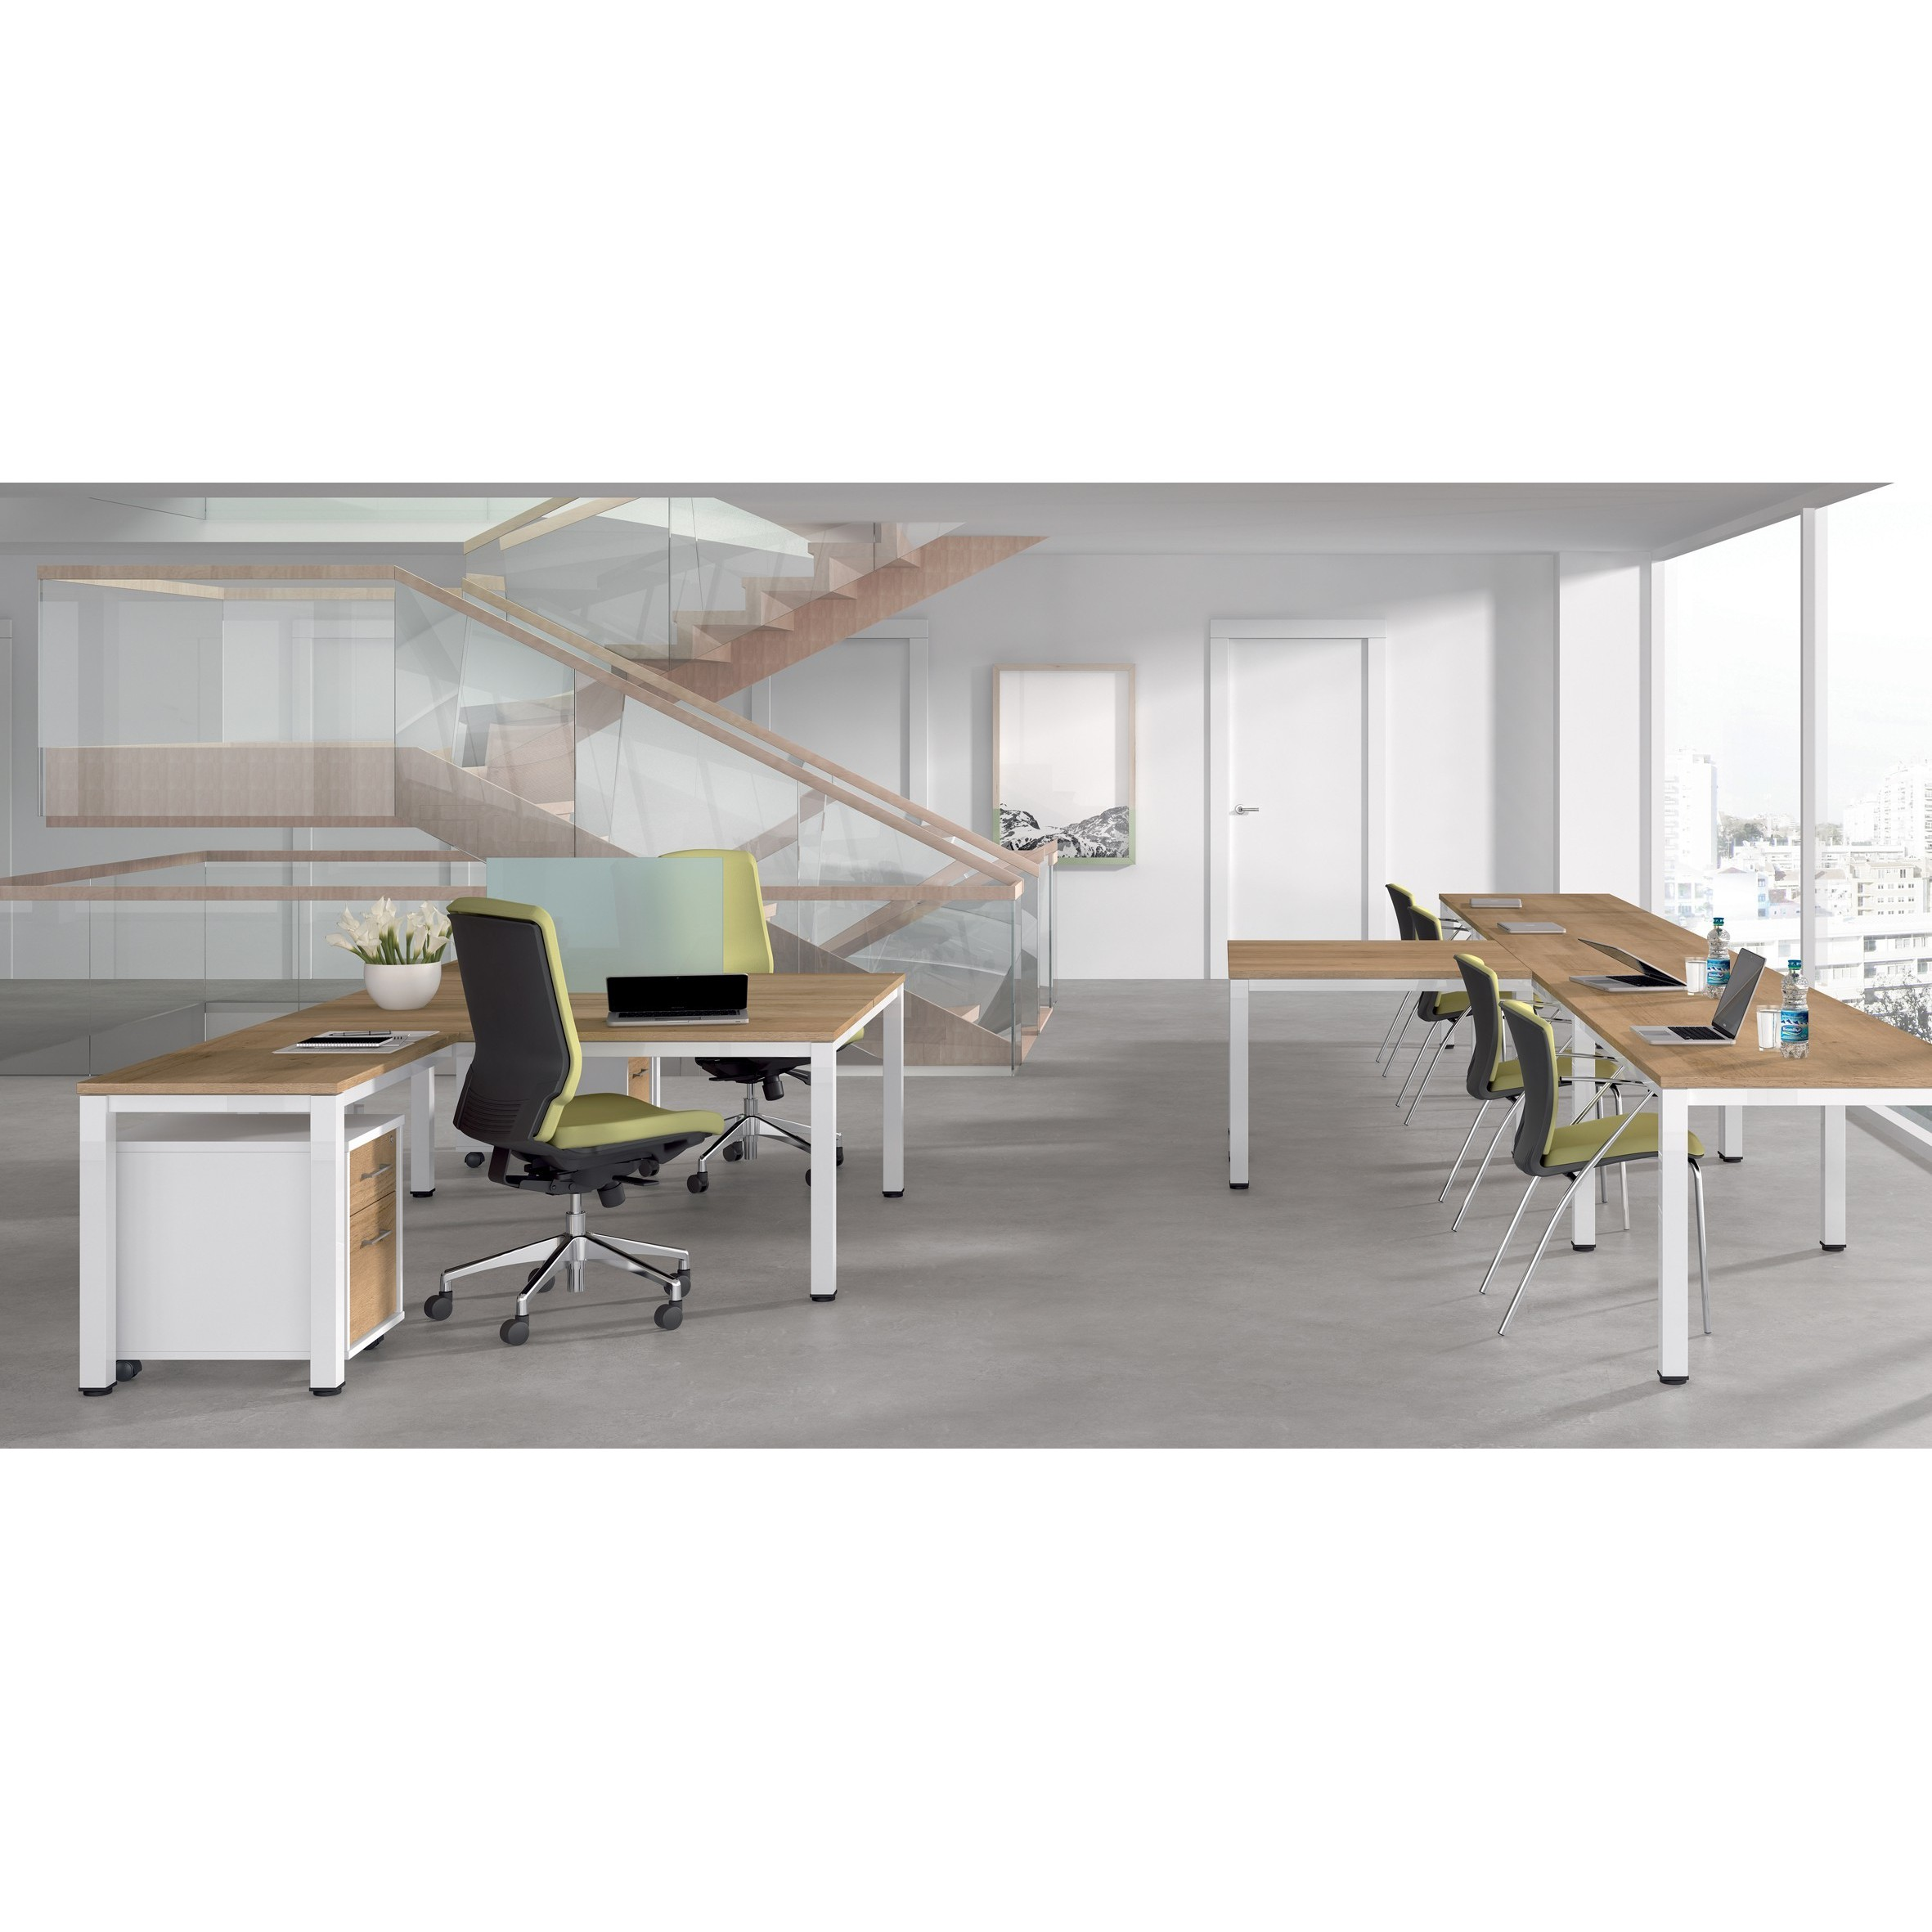 WING FOR TABLE EXECUTIVE SERIES 100X60 WHITE/WHITE (PRICE ONLY FOR THE WING, THE MAIN TABLE PURCHASE BE APART)